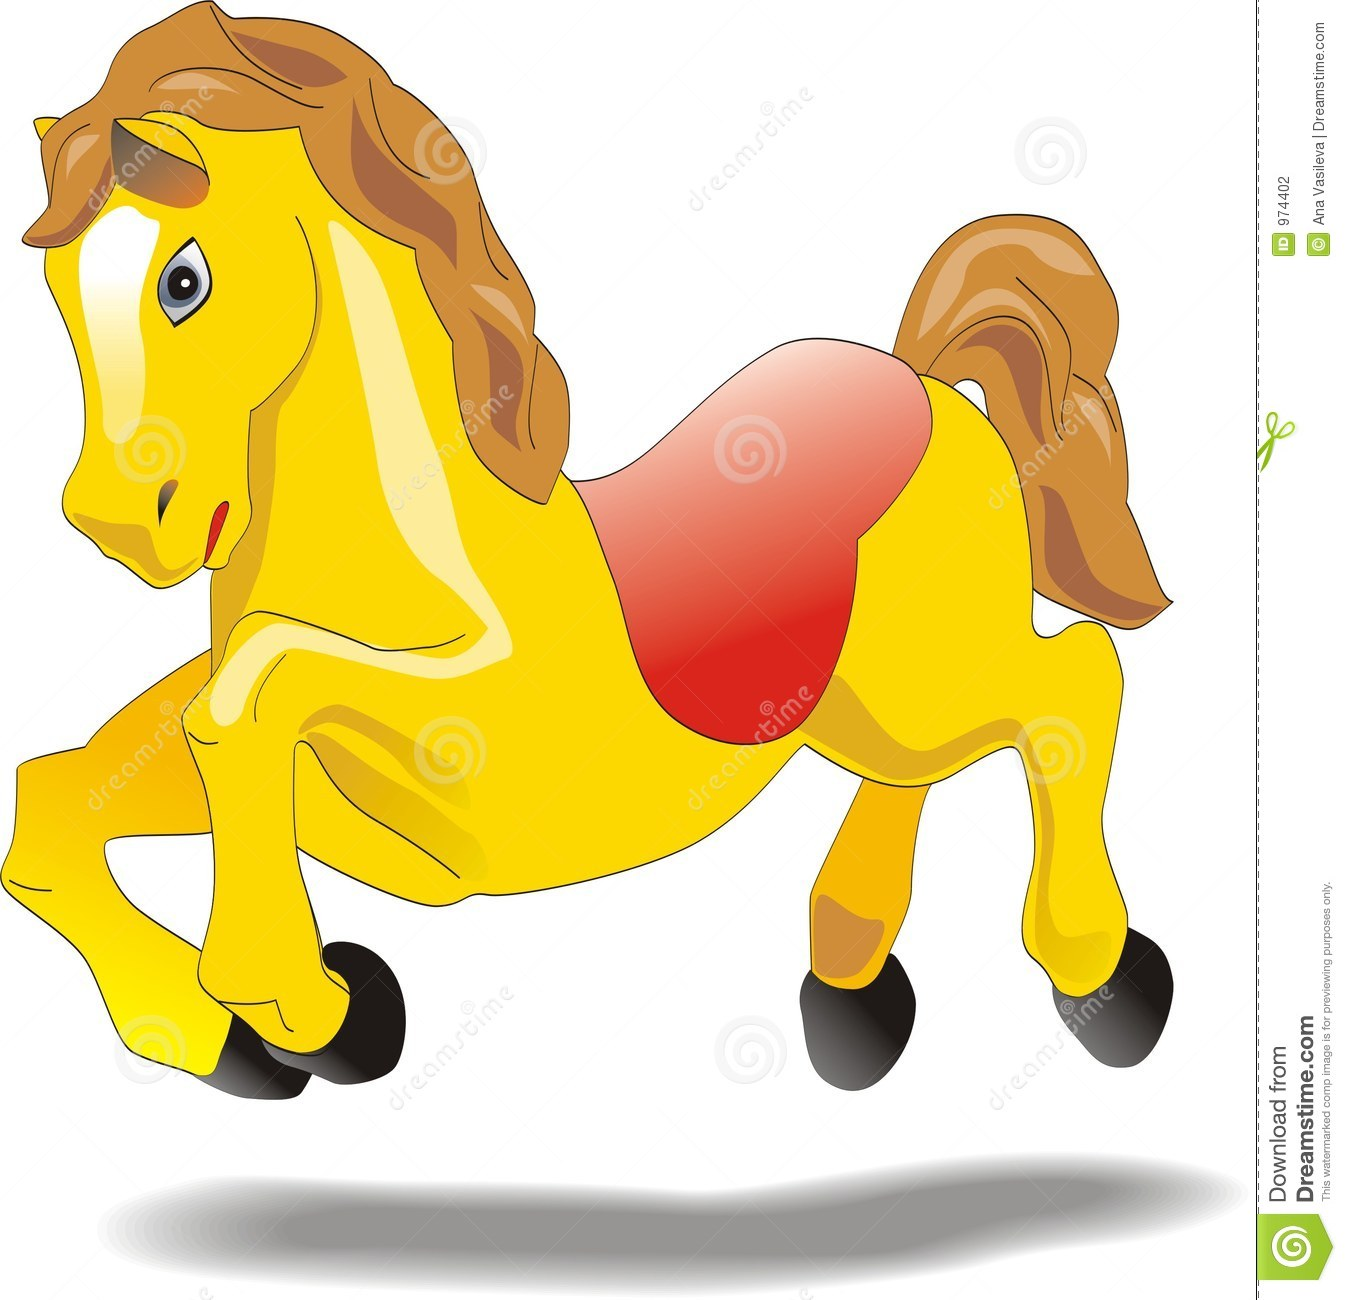 Cartoon Baby Horse Animation Character Stock Vector Illustration Of Baby Headlong 974402